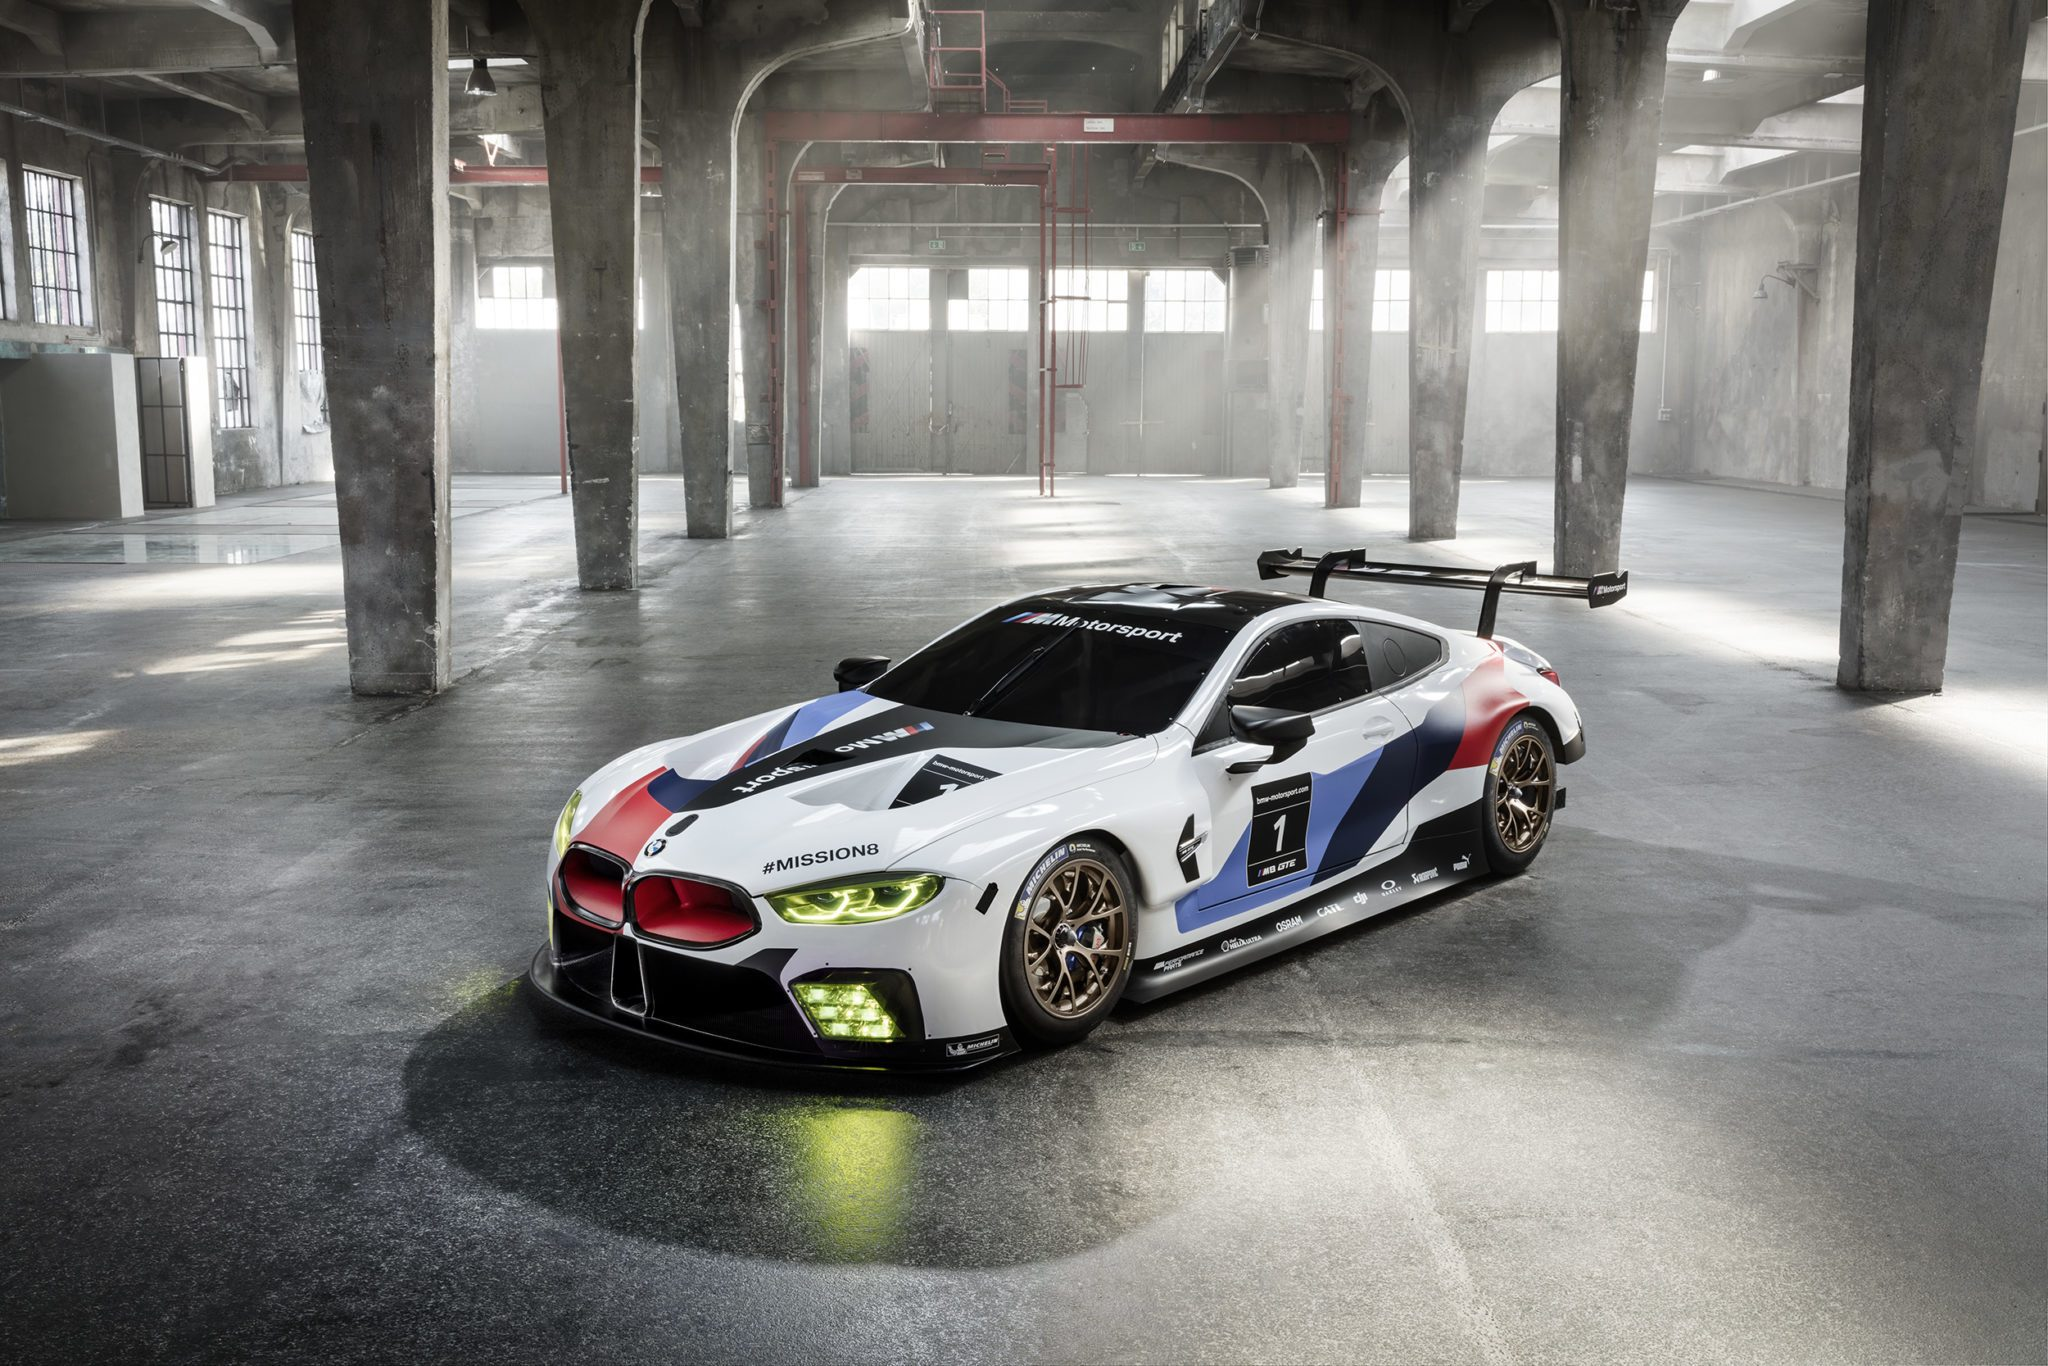 Bmw Returns To Endurance Racing In With New Gte